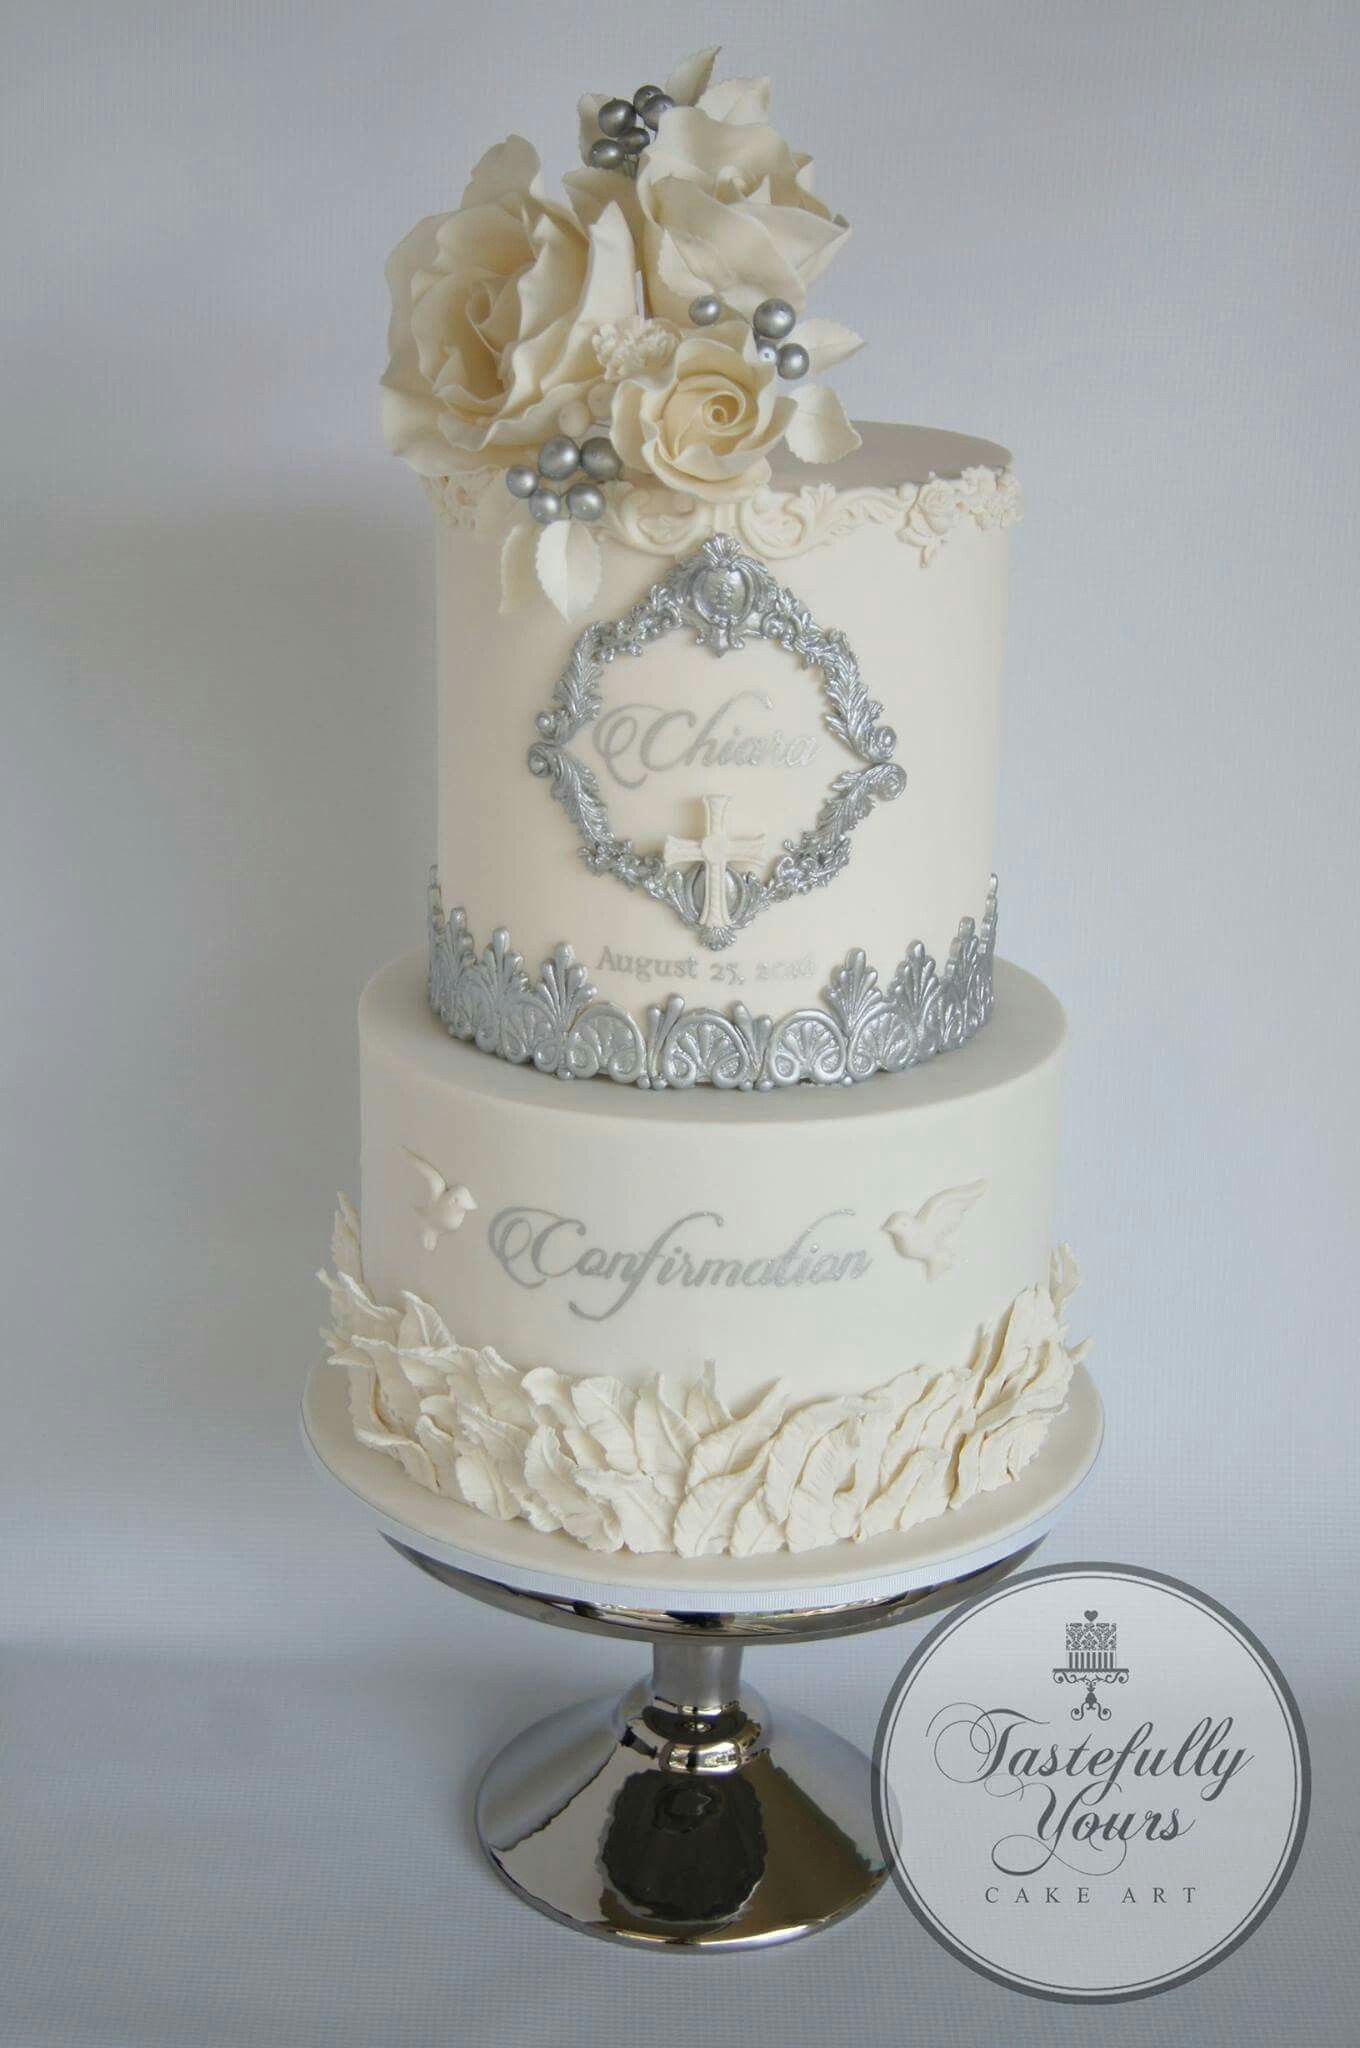 Pin by Yessy Cost on Solo pasteles!!! | Pinterest | Christening ...